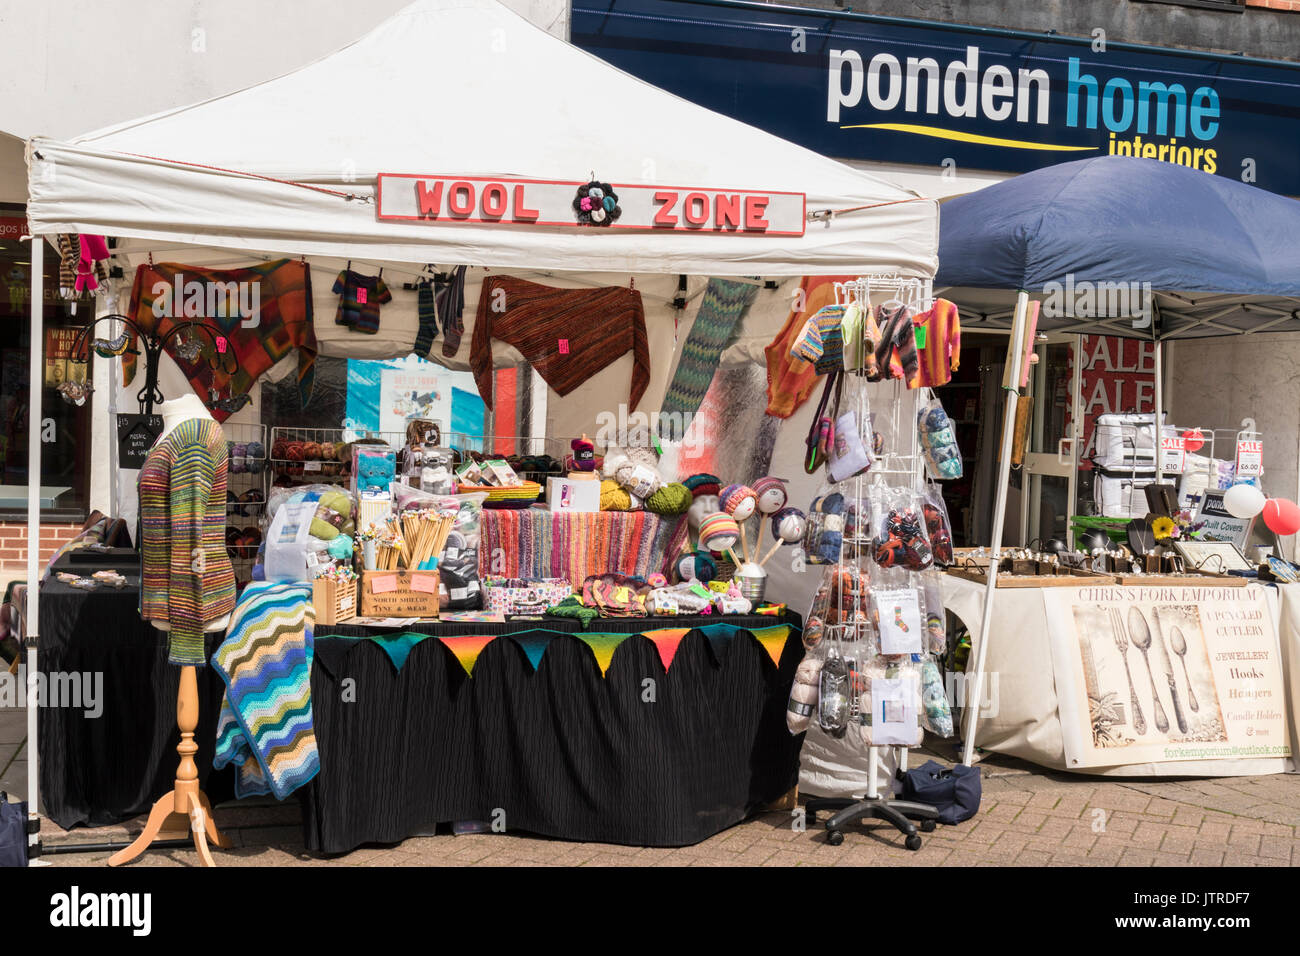 Melton Mowbray folk festival and craft fair,wool stall selling all shades and colourful woollen item. Ponden home interiors shop in the background. - Stock Image